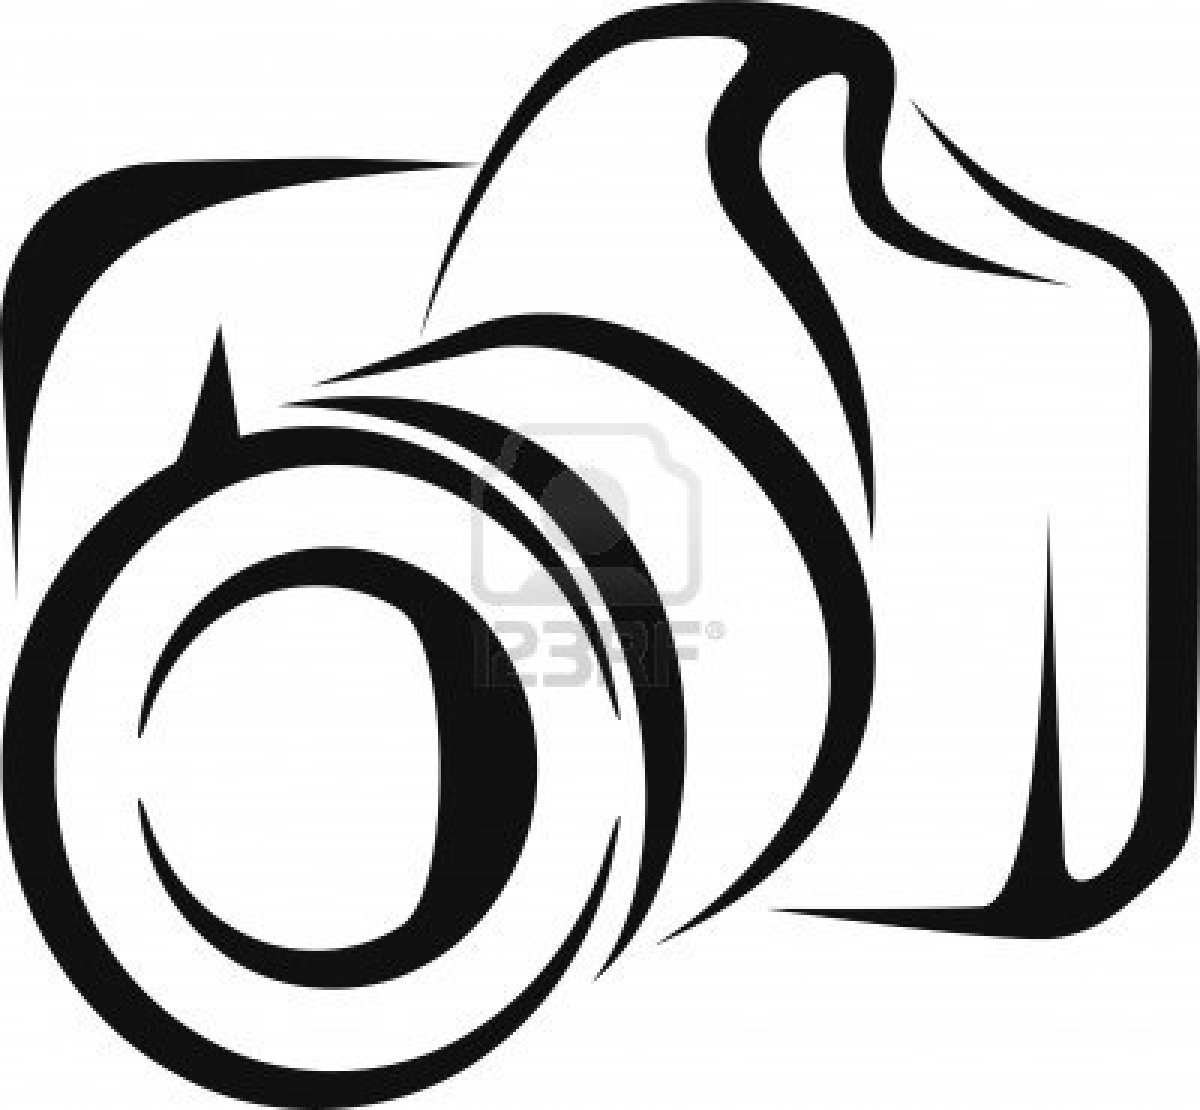 Camera 20clipart   Clipart Panda   Free Clipart Images